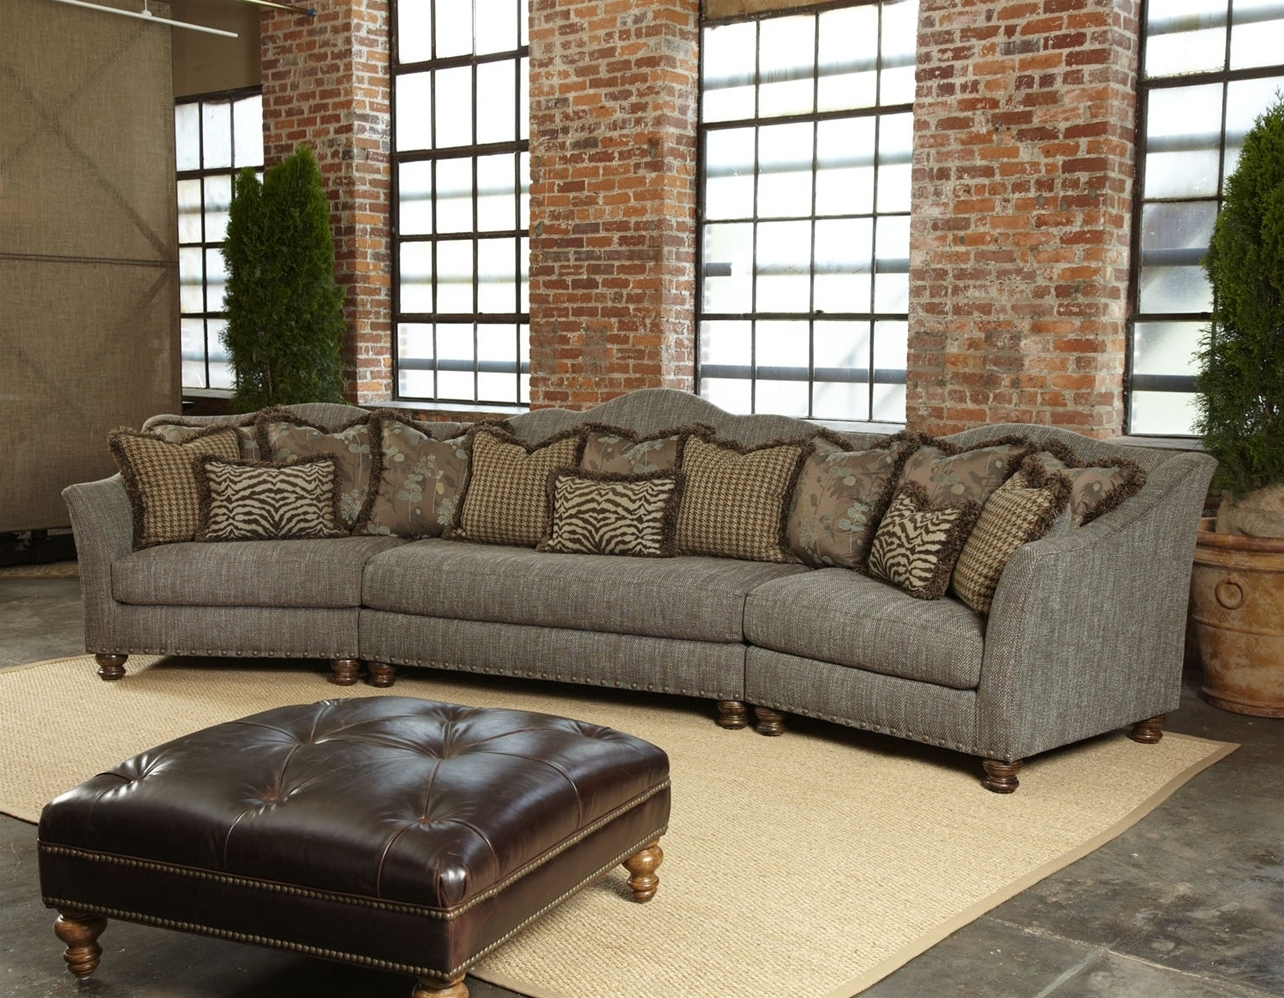 Perfect High Quality Sectional Sofa 24 For Modern Sofa Inspiration with High Quality Sectional Sofa : best quality sectional sofa - Sectionals, Sofas & Couches